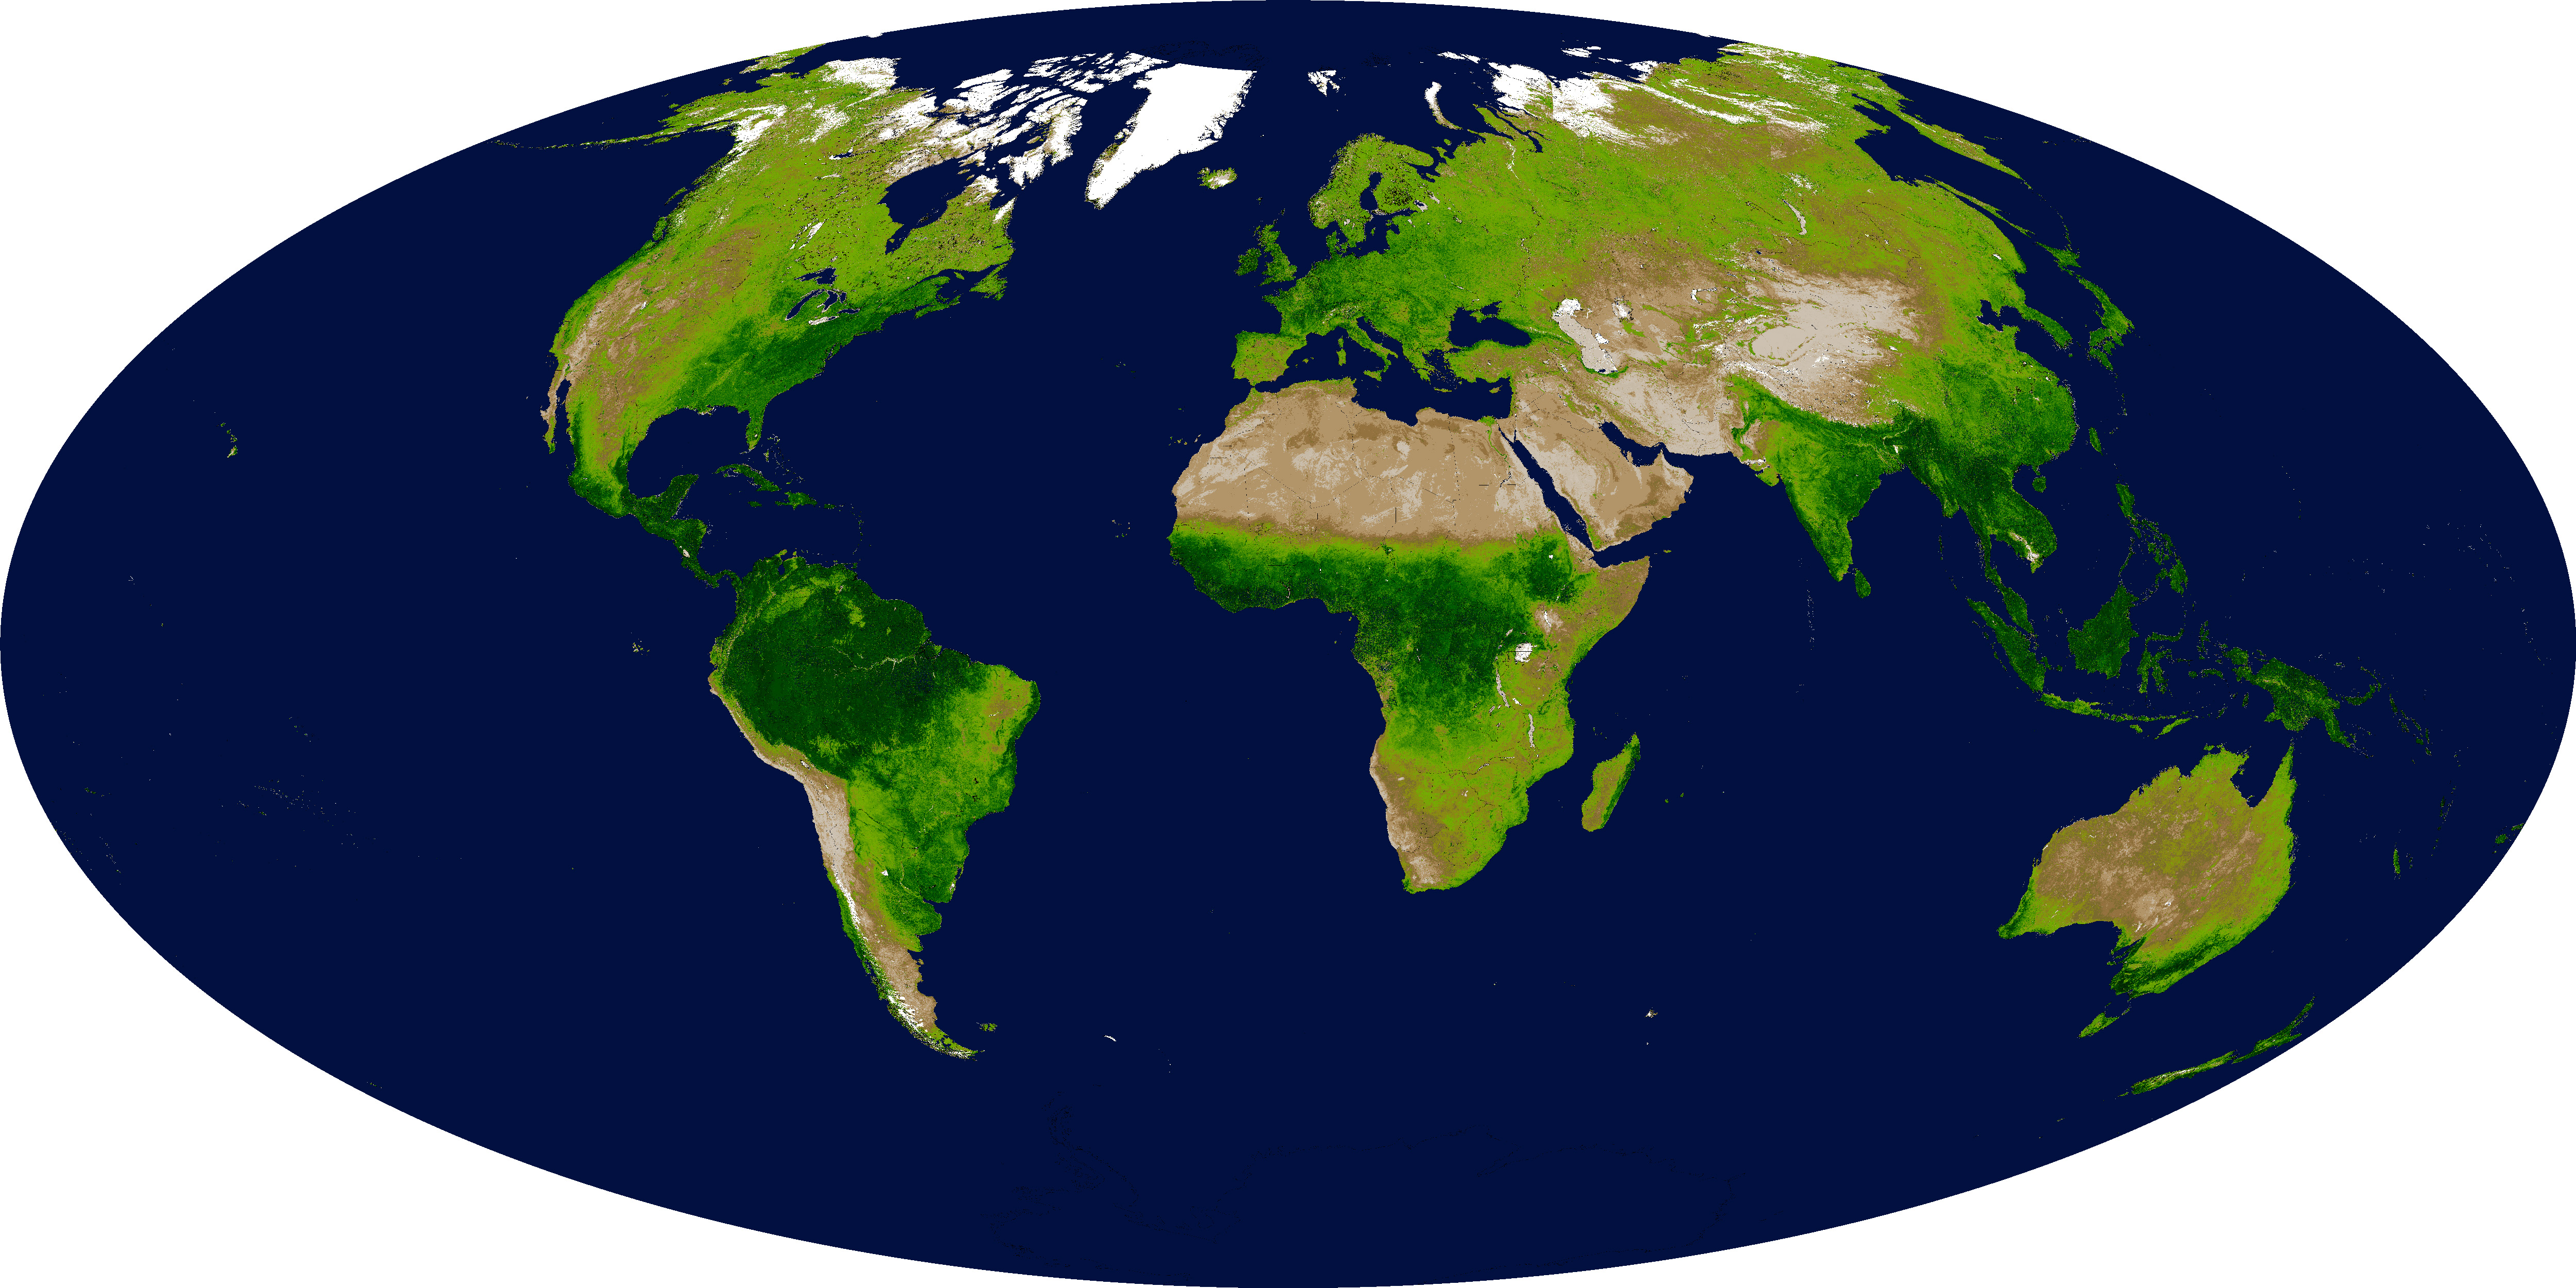 Global Vegetation Distribution From Satellites. Shown is the Enhanced Vegetation Index (EVI), which represents the concentration of green leaf vegetation. From nasa.gov.